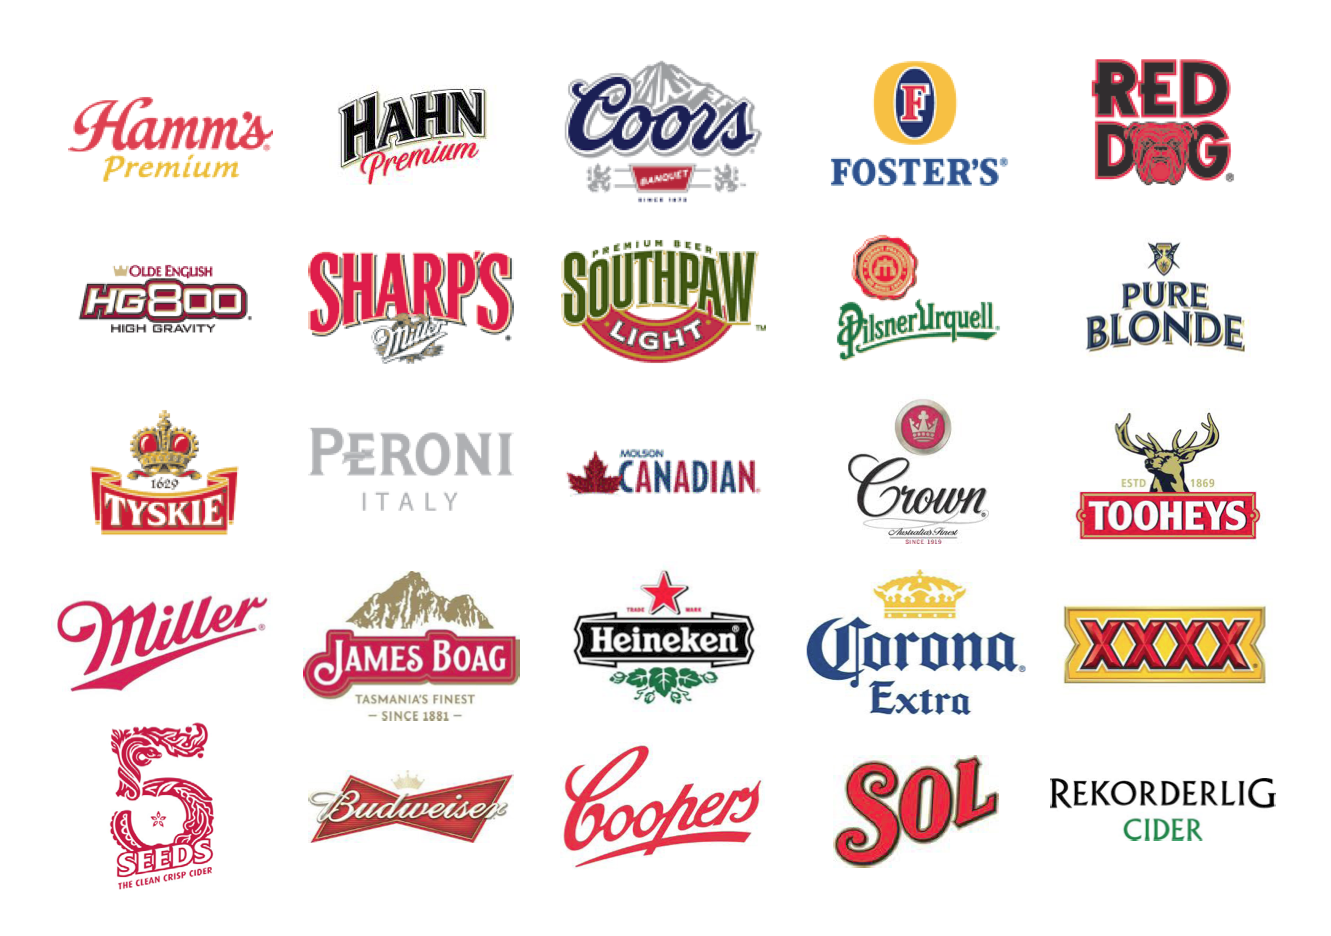 classic beer logos benchmarking for a client